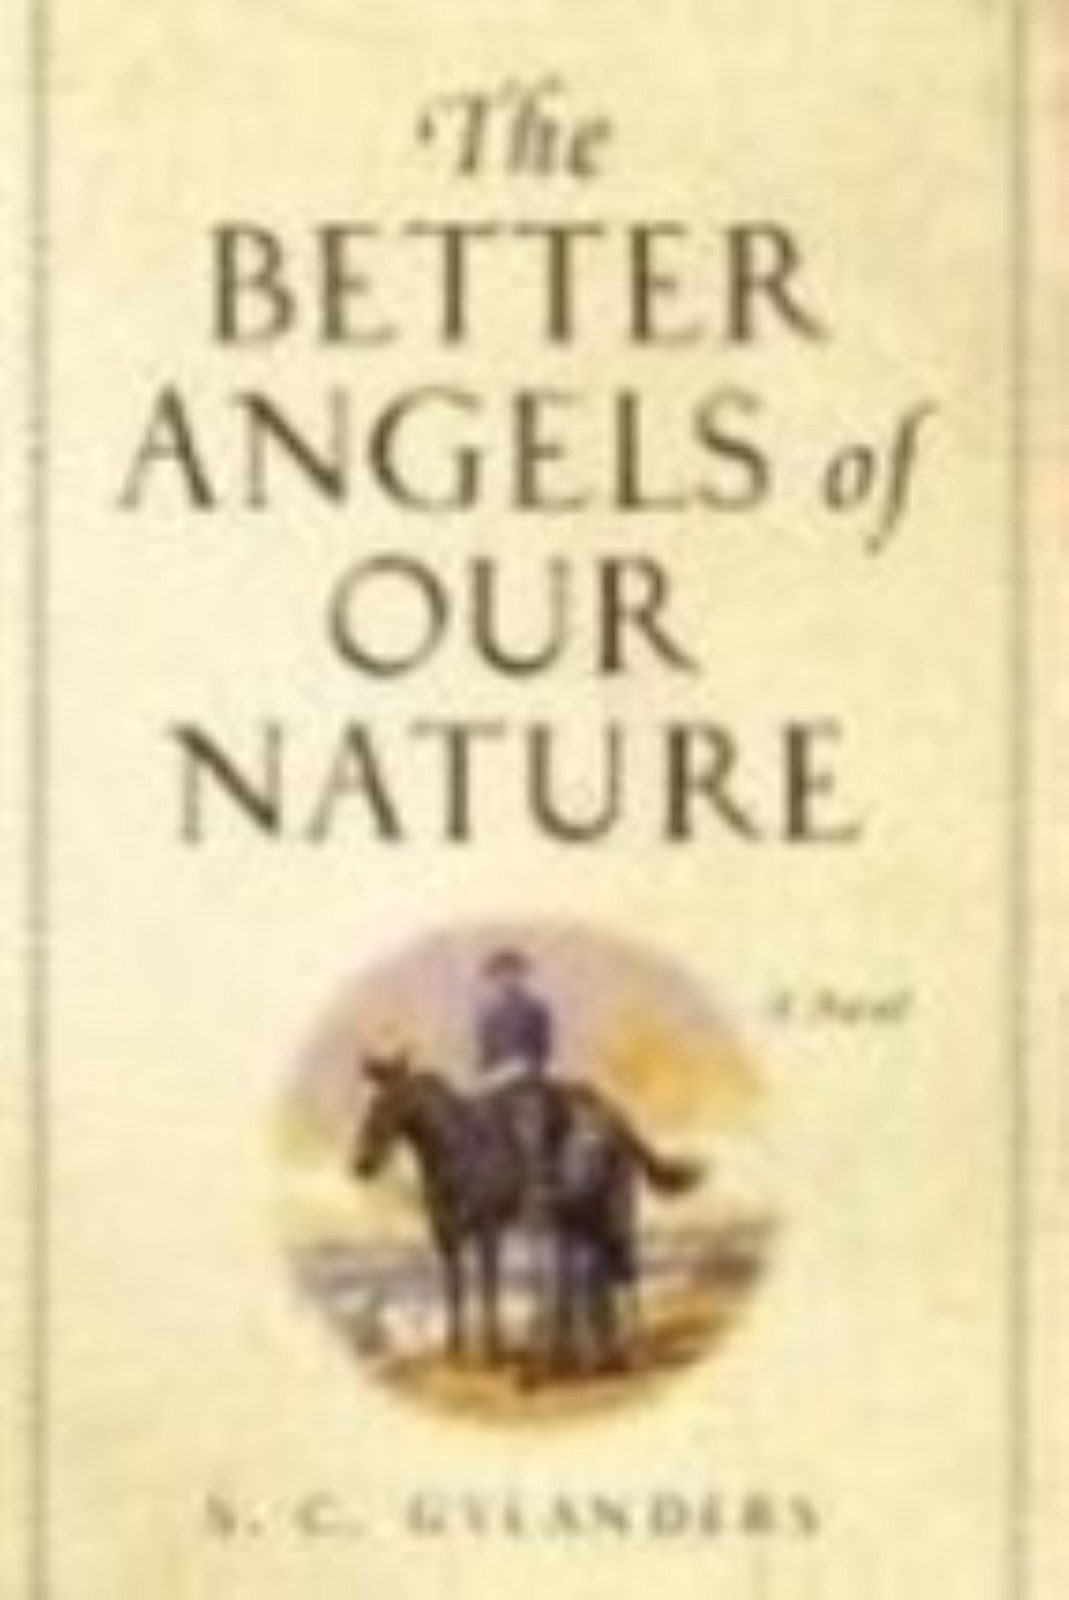 The Better Angels of Our Nature: A Novel by Gylanders